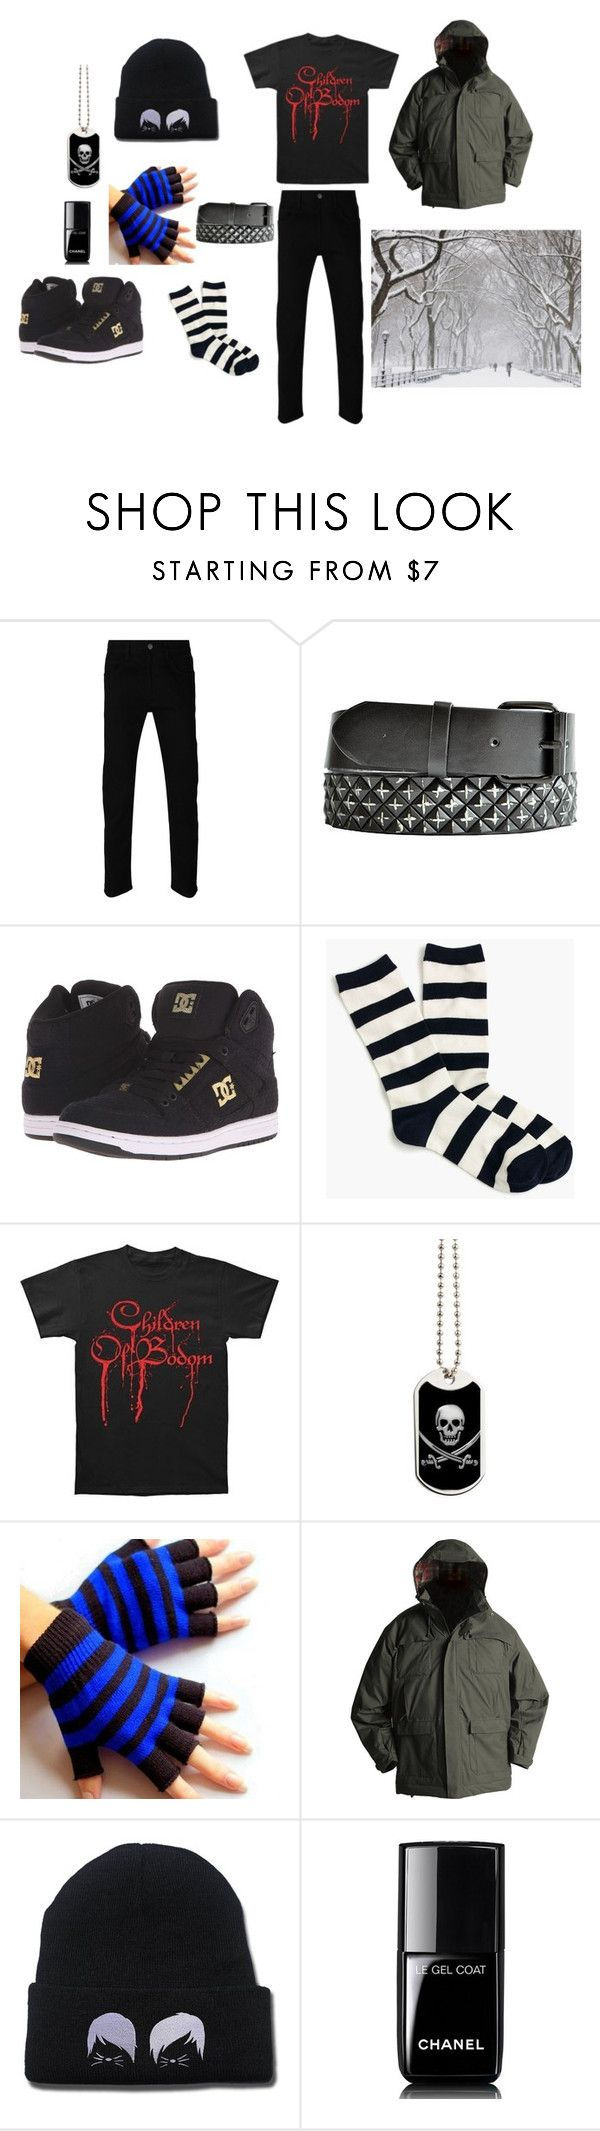 """Emo Winter Outfit"" by wickedghostman94 on Polyvore featuring Gucci, DC Shoes, J.Crew, Chanel, men's fashion and menswear"